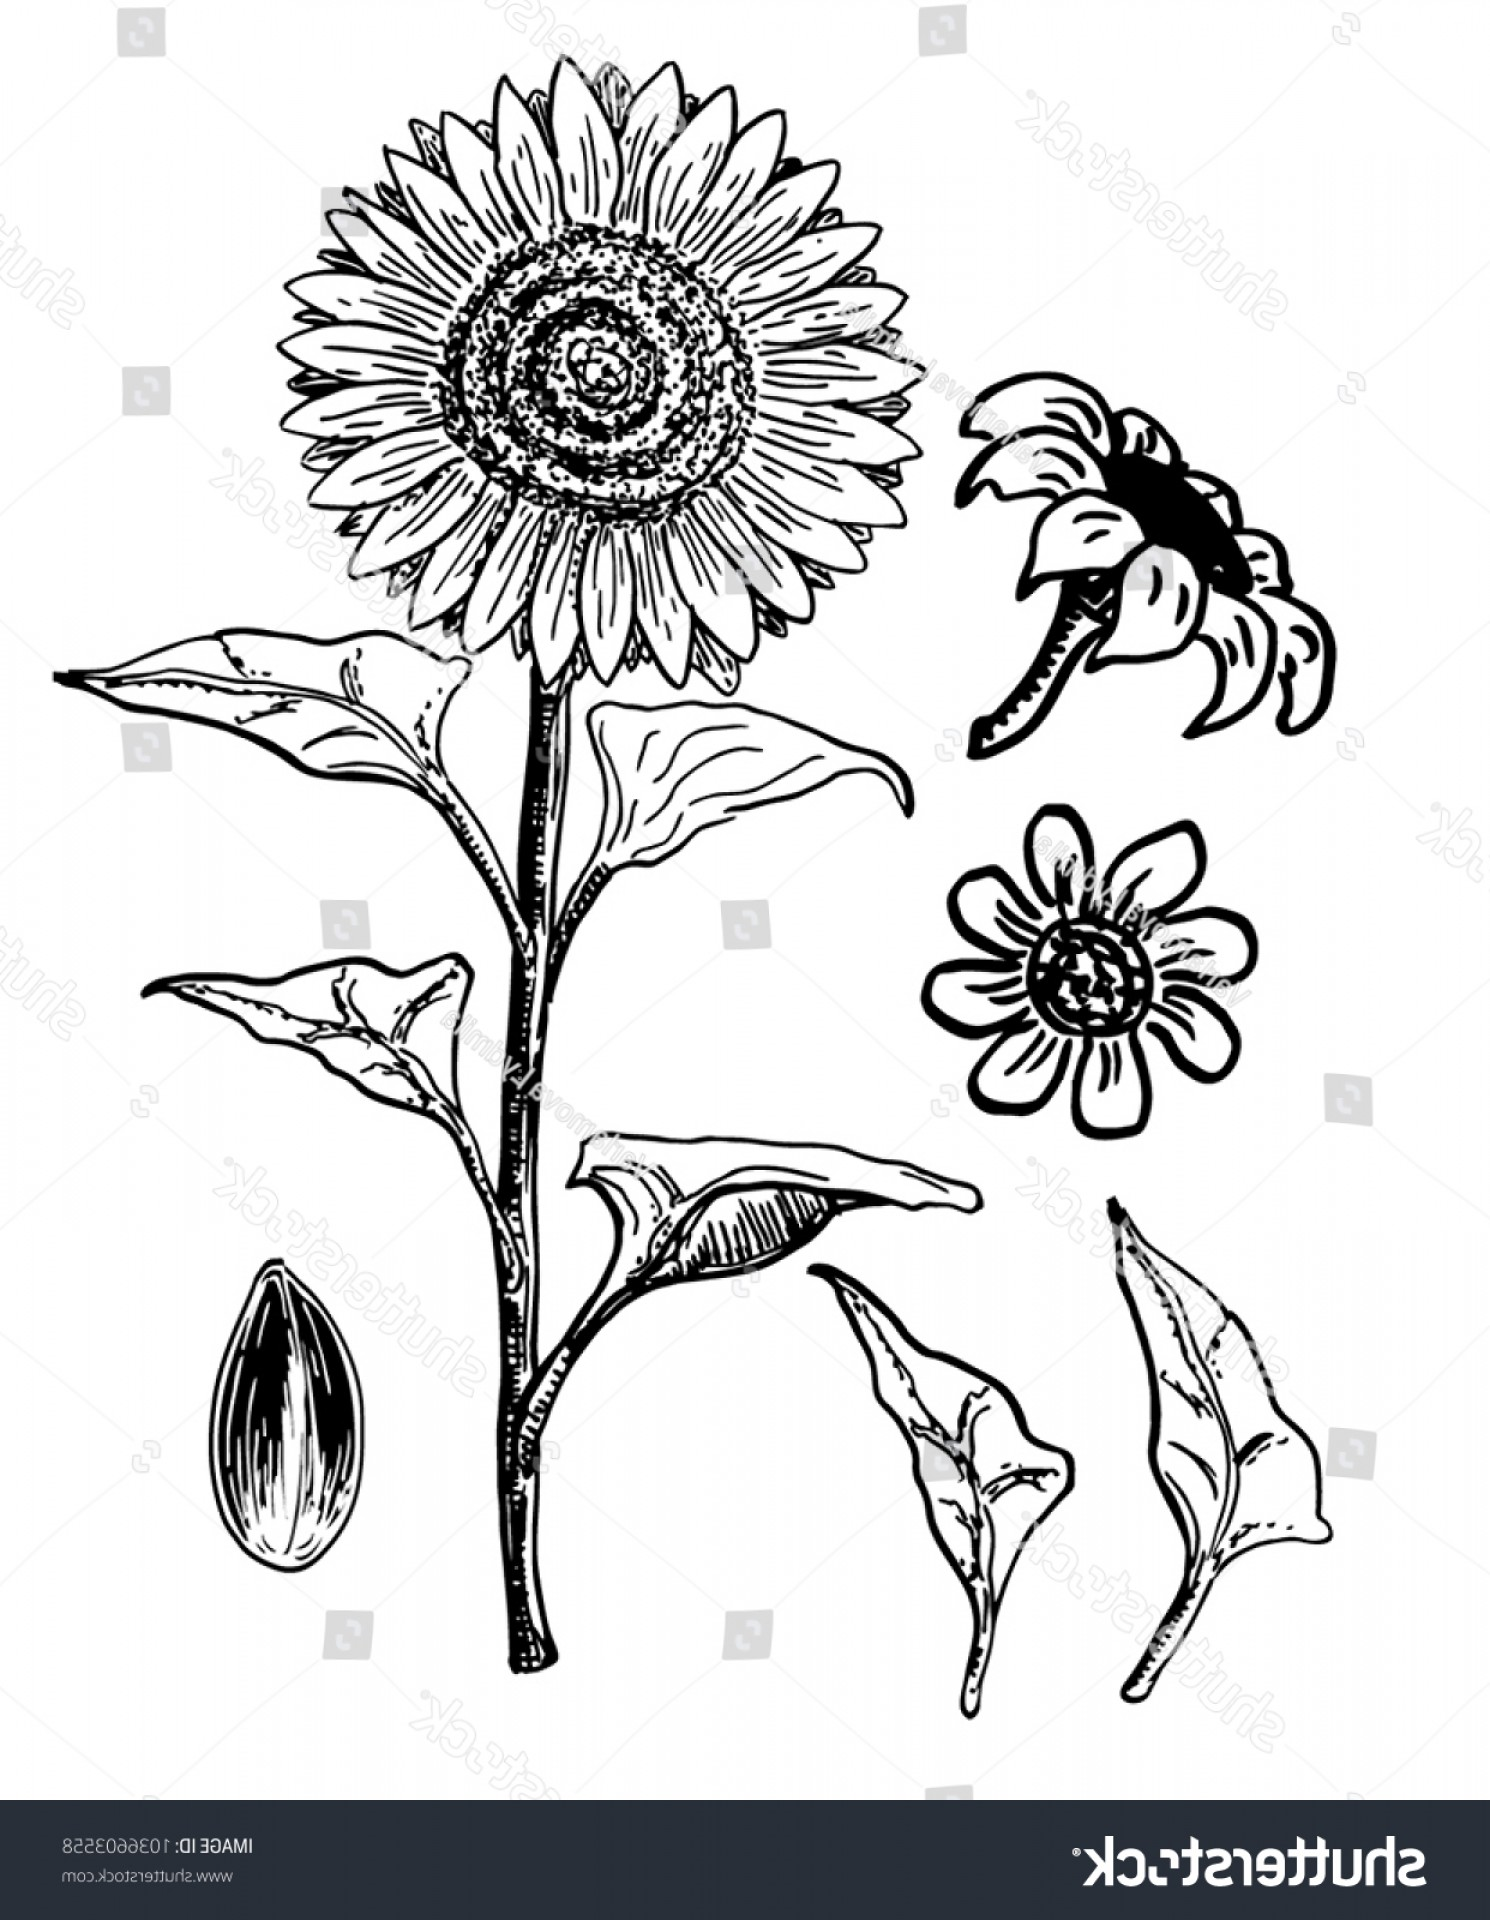 Seed Flower Vectors: Sunflower Seed Flower Vector Drawing Set